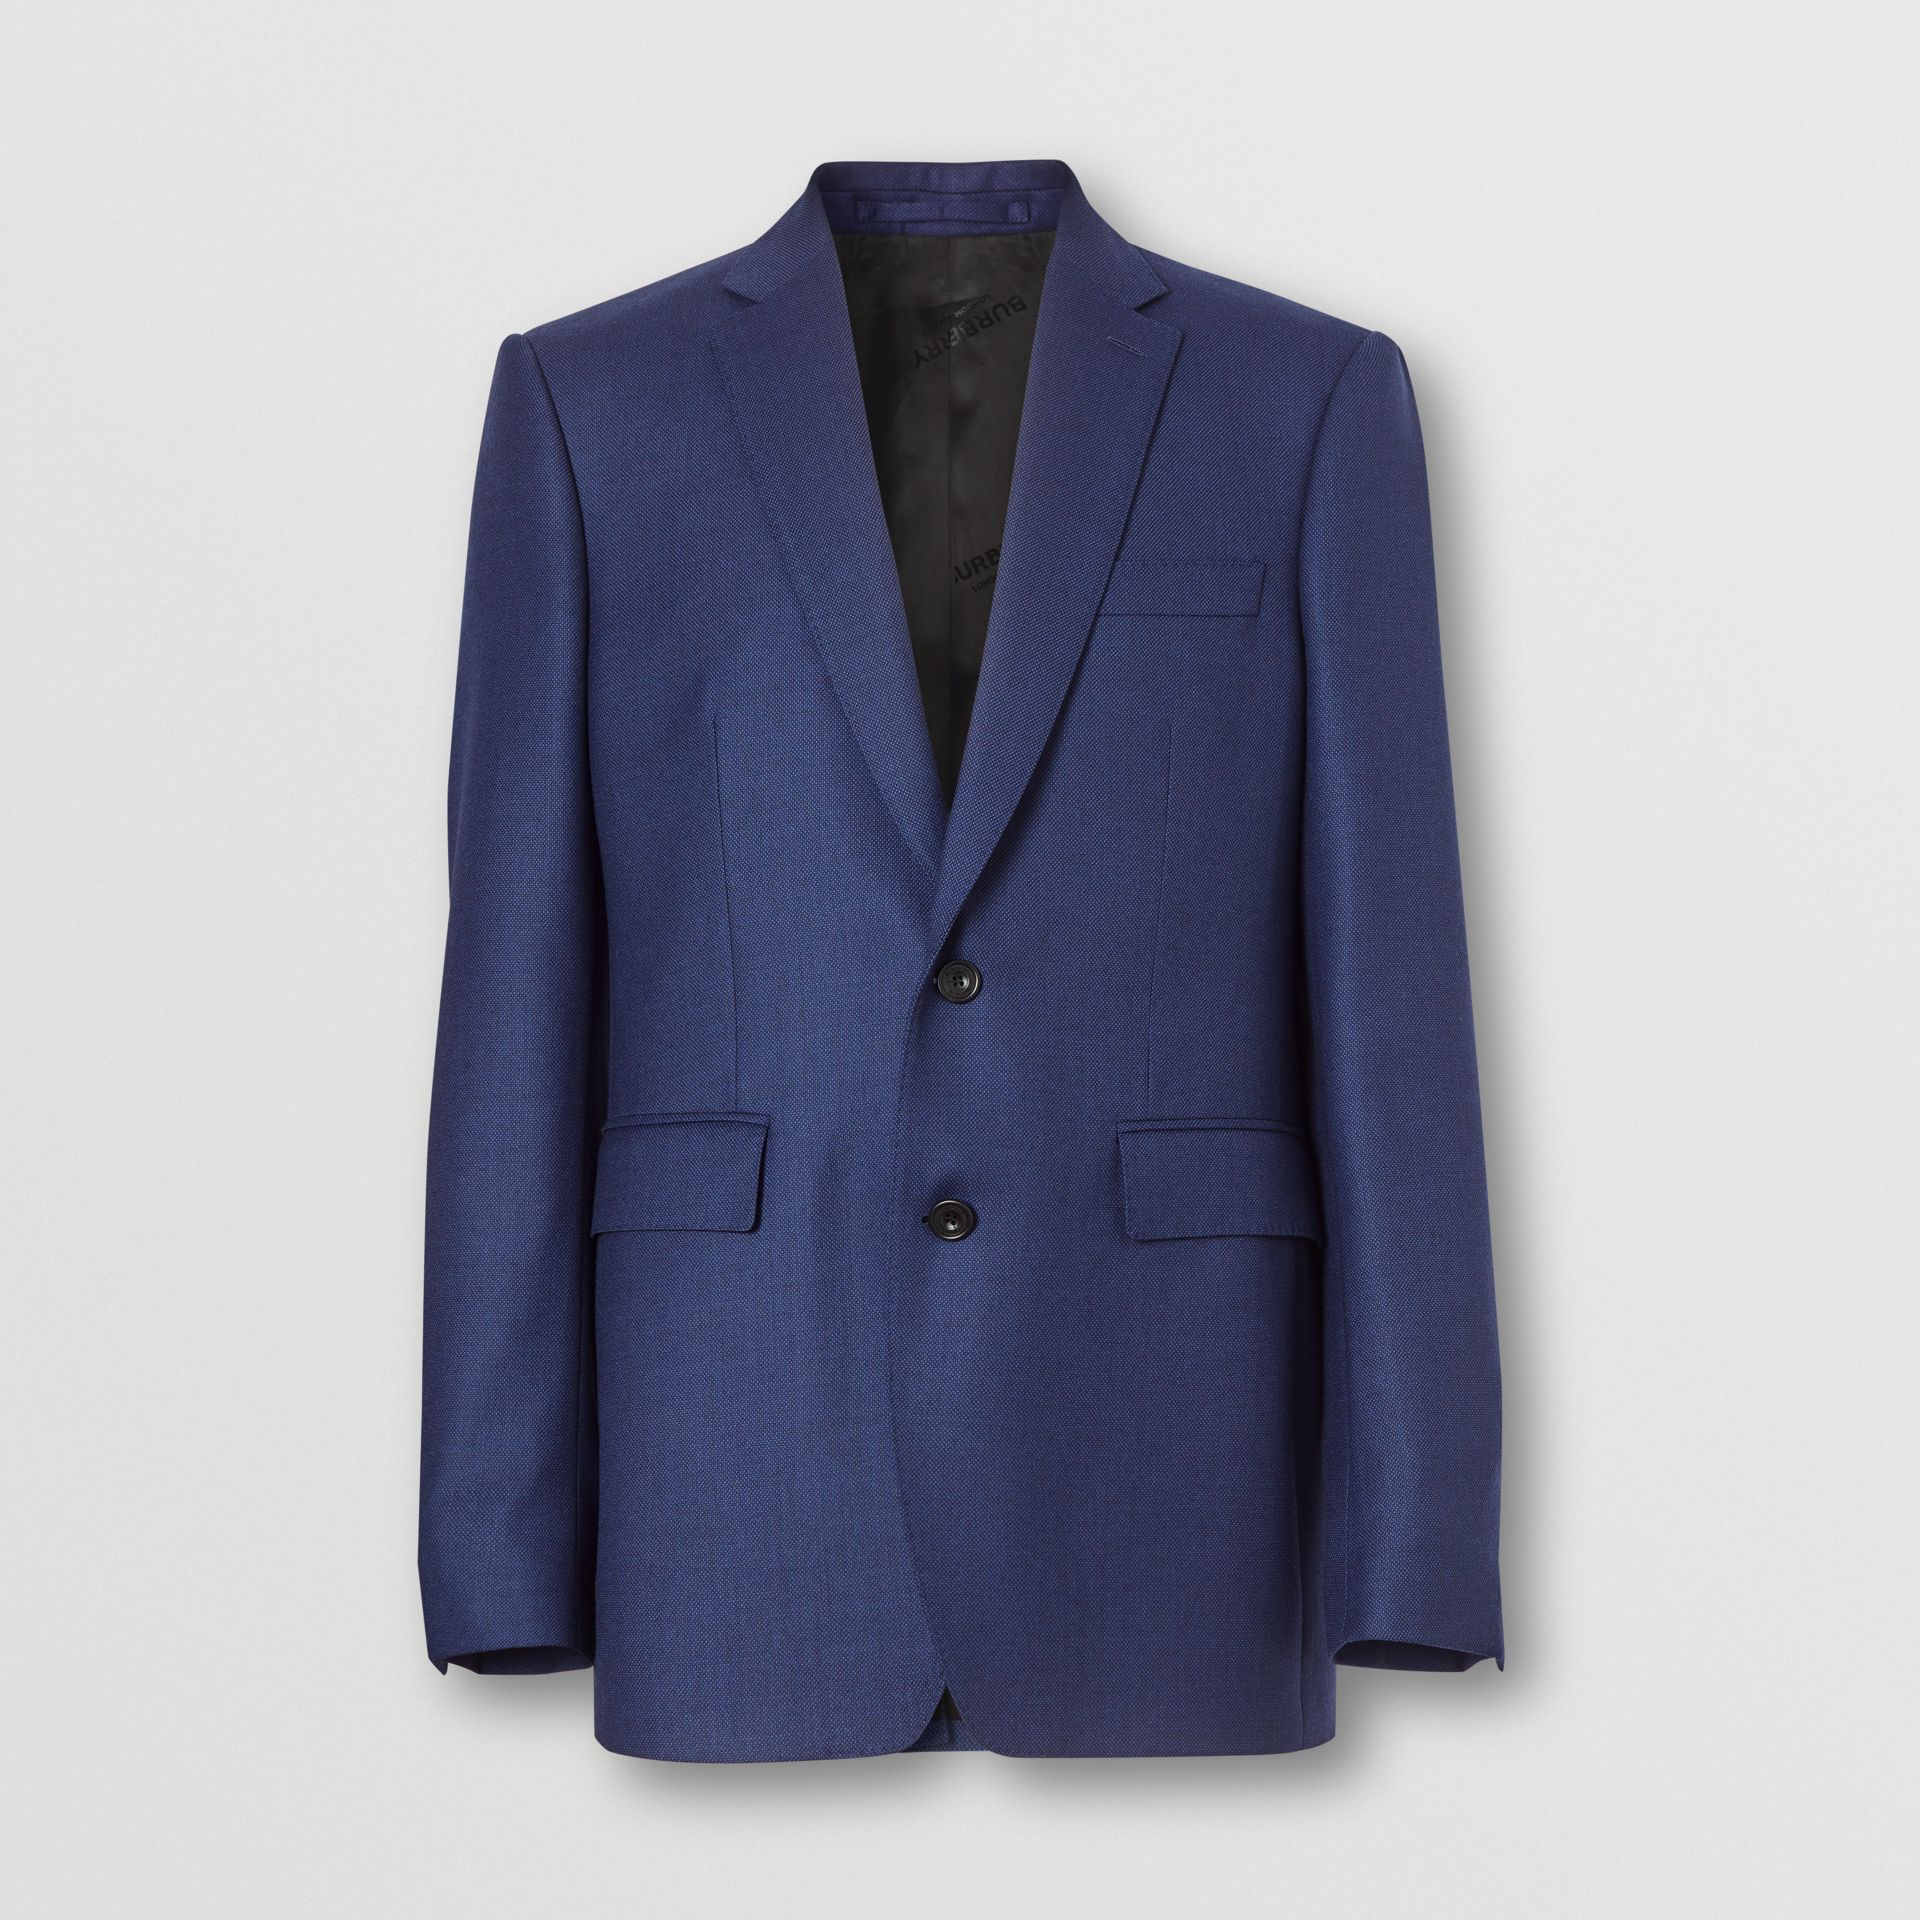 Classic Fit Birdseye Wool Tailored Jacket in Bright Navy - Men | Burberry United Kingdom - gallery image 3